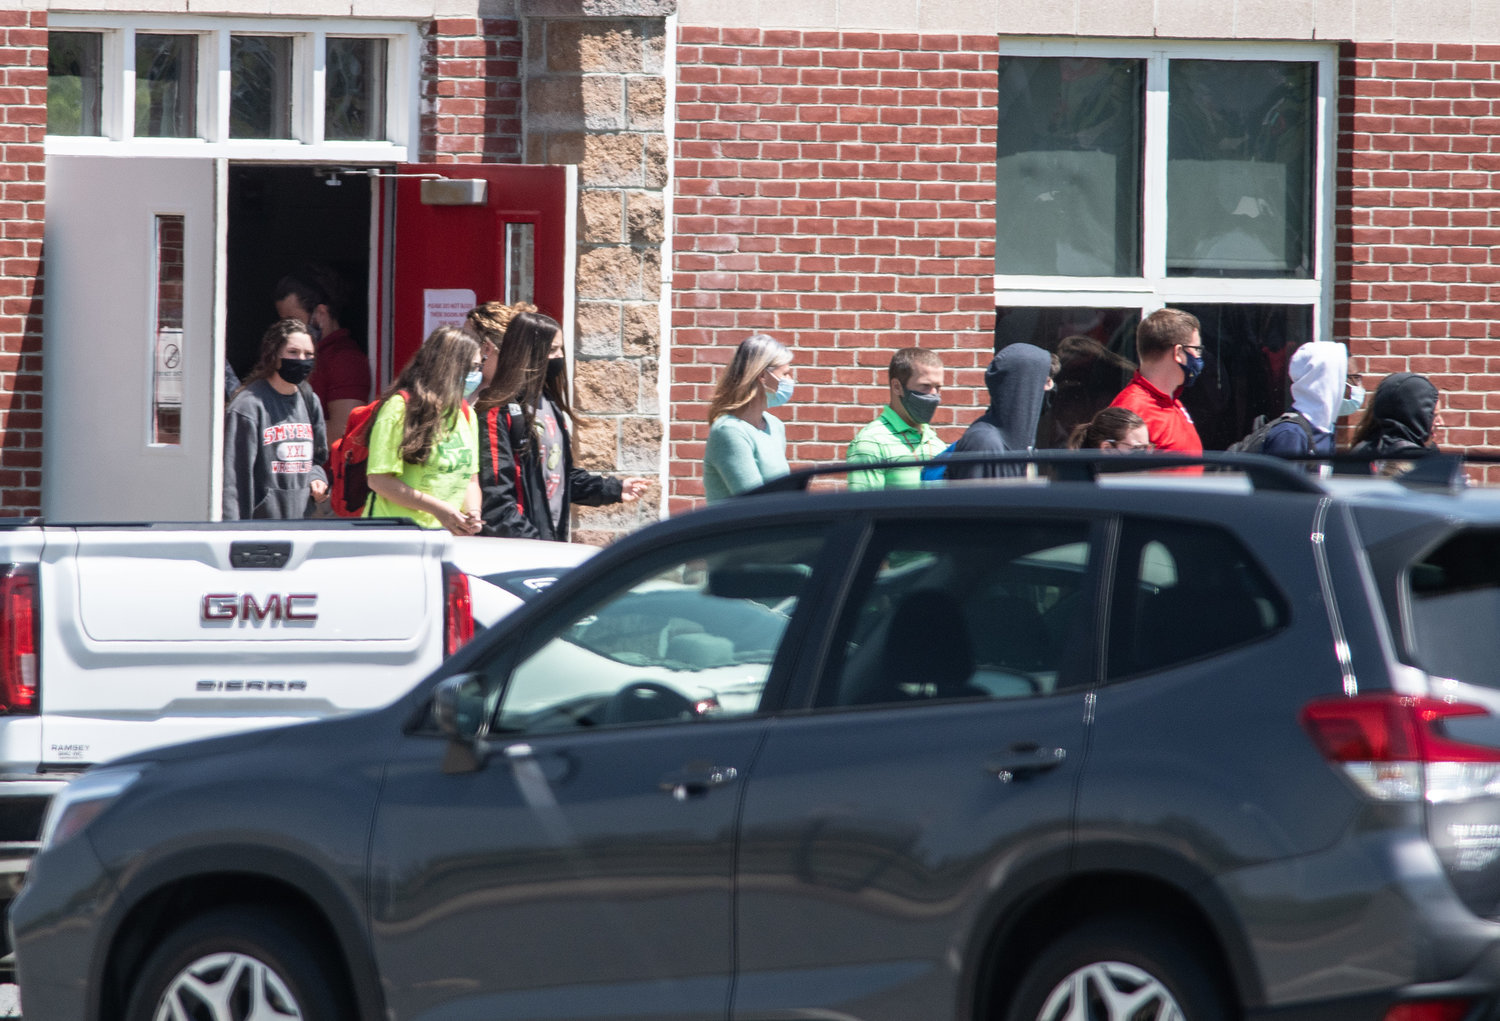 Smyrna Middle School students leave through a side door and head toward Smyrna High School to waiting buses and parents after a women was shot and died in the front of the Middle School on Tuesday morning.